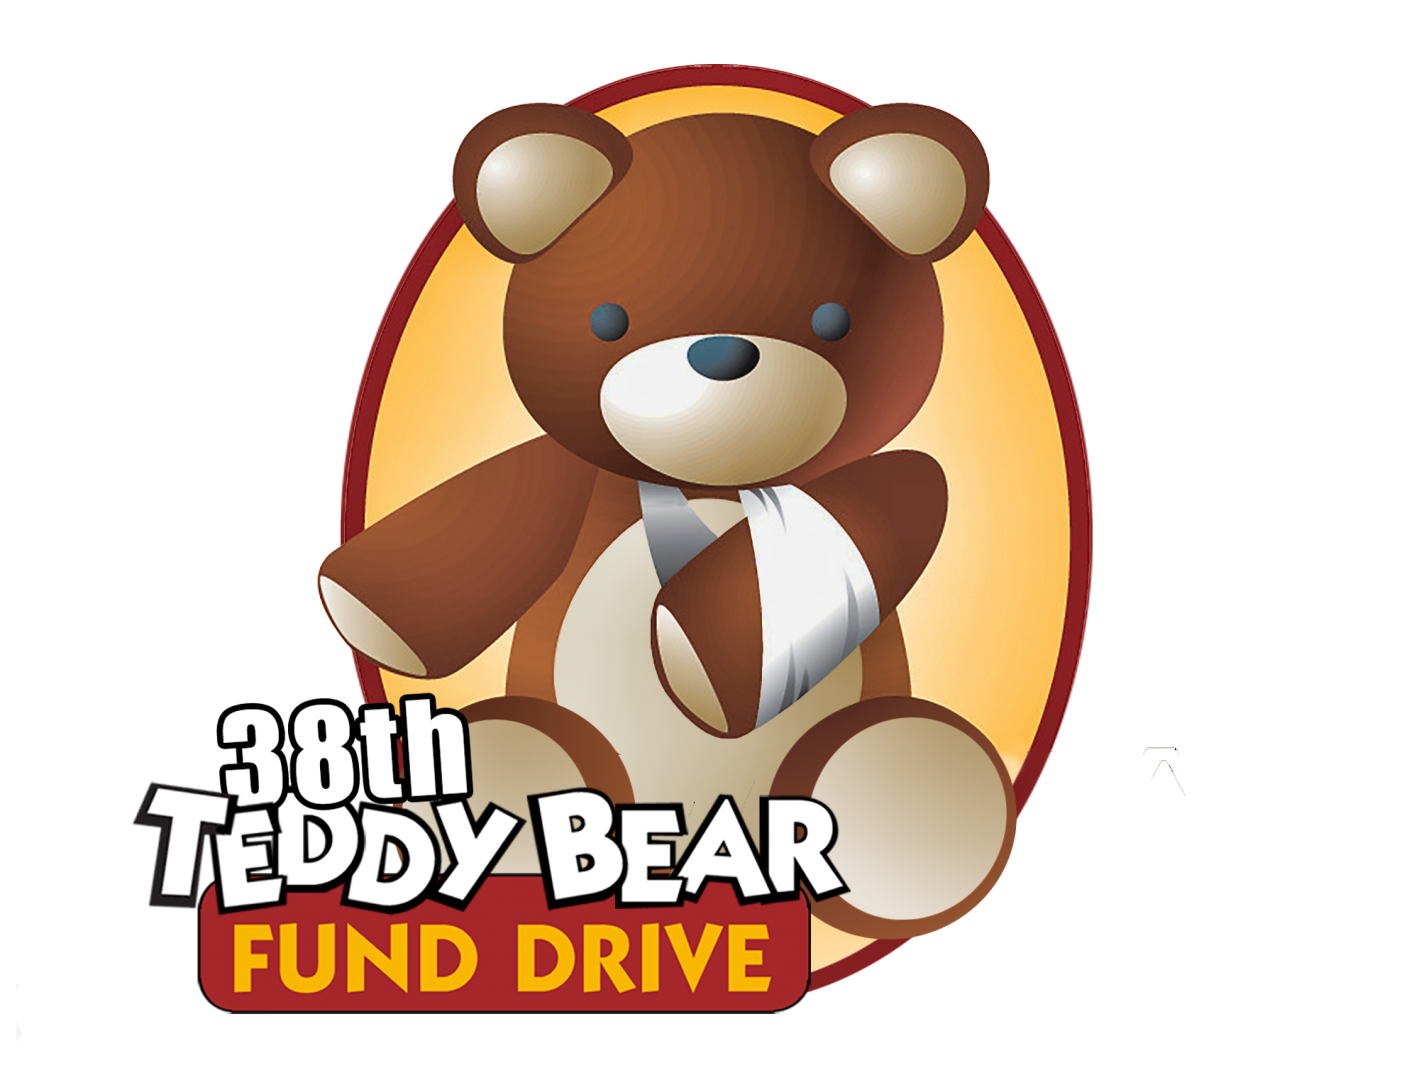 Teddy bear basketball clipart clip free library Teddy Bear Fund Drive | U92.5 FM | Today's Best Music | Indiana, PA clip free library